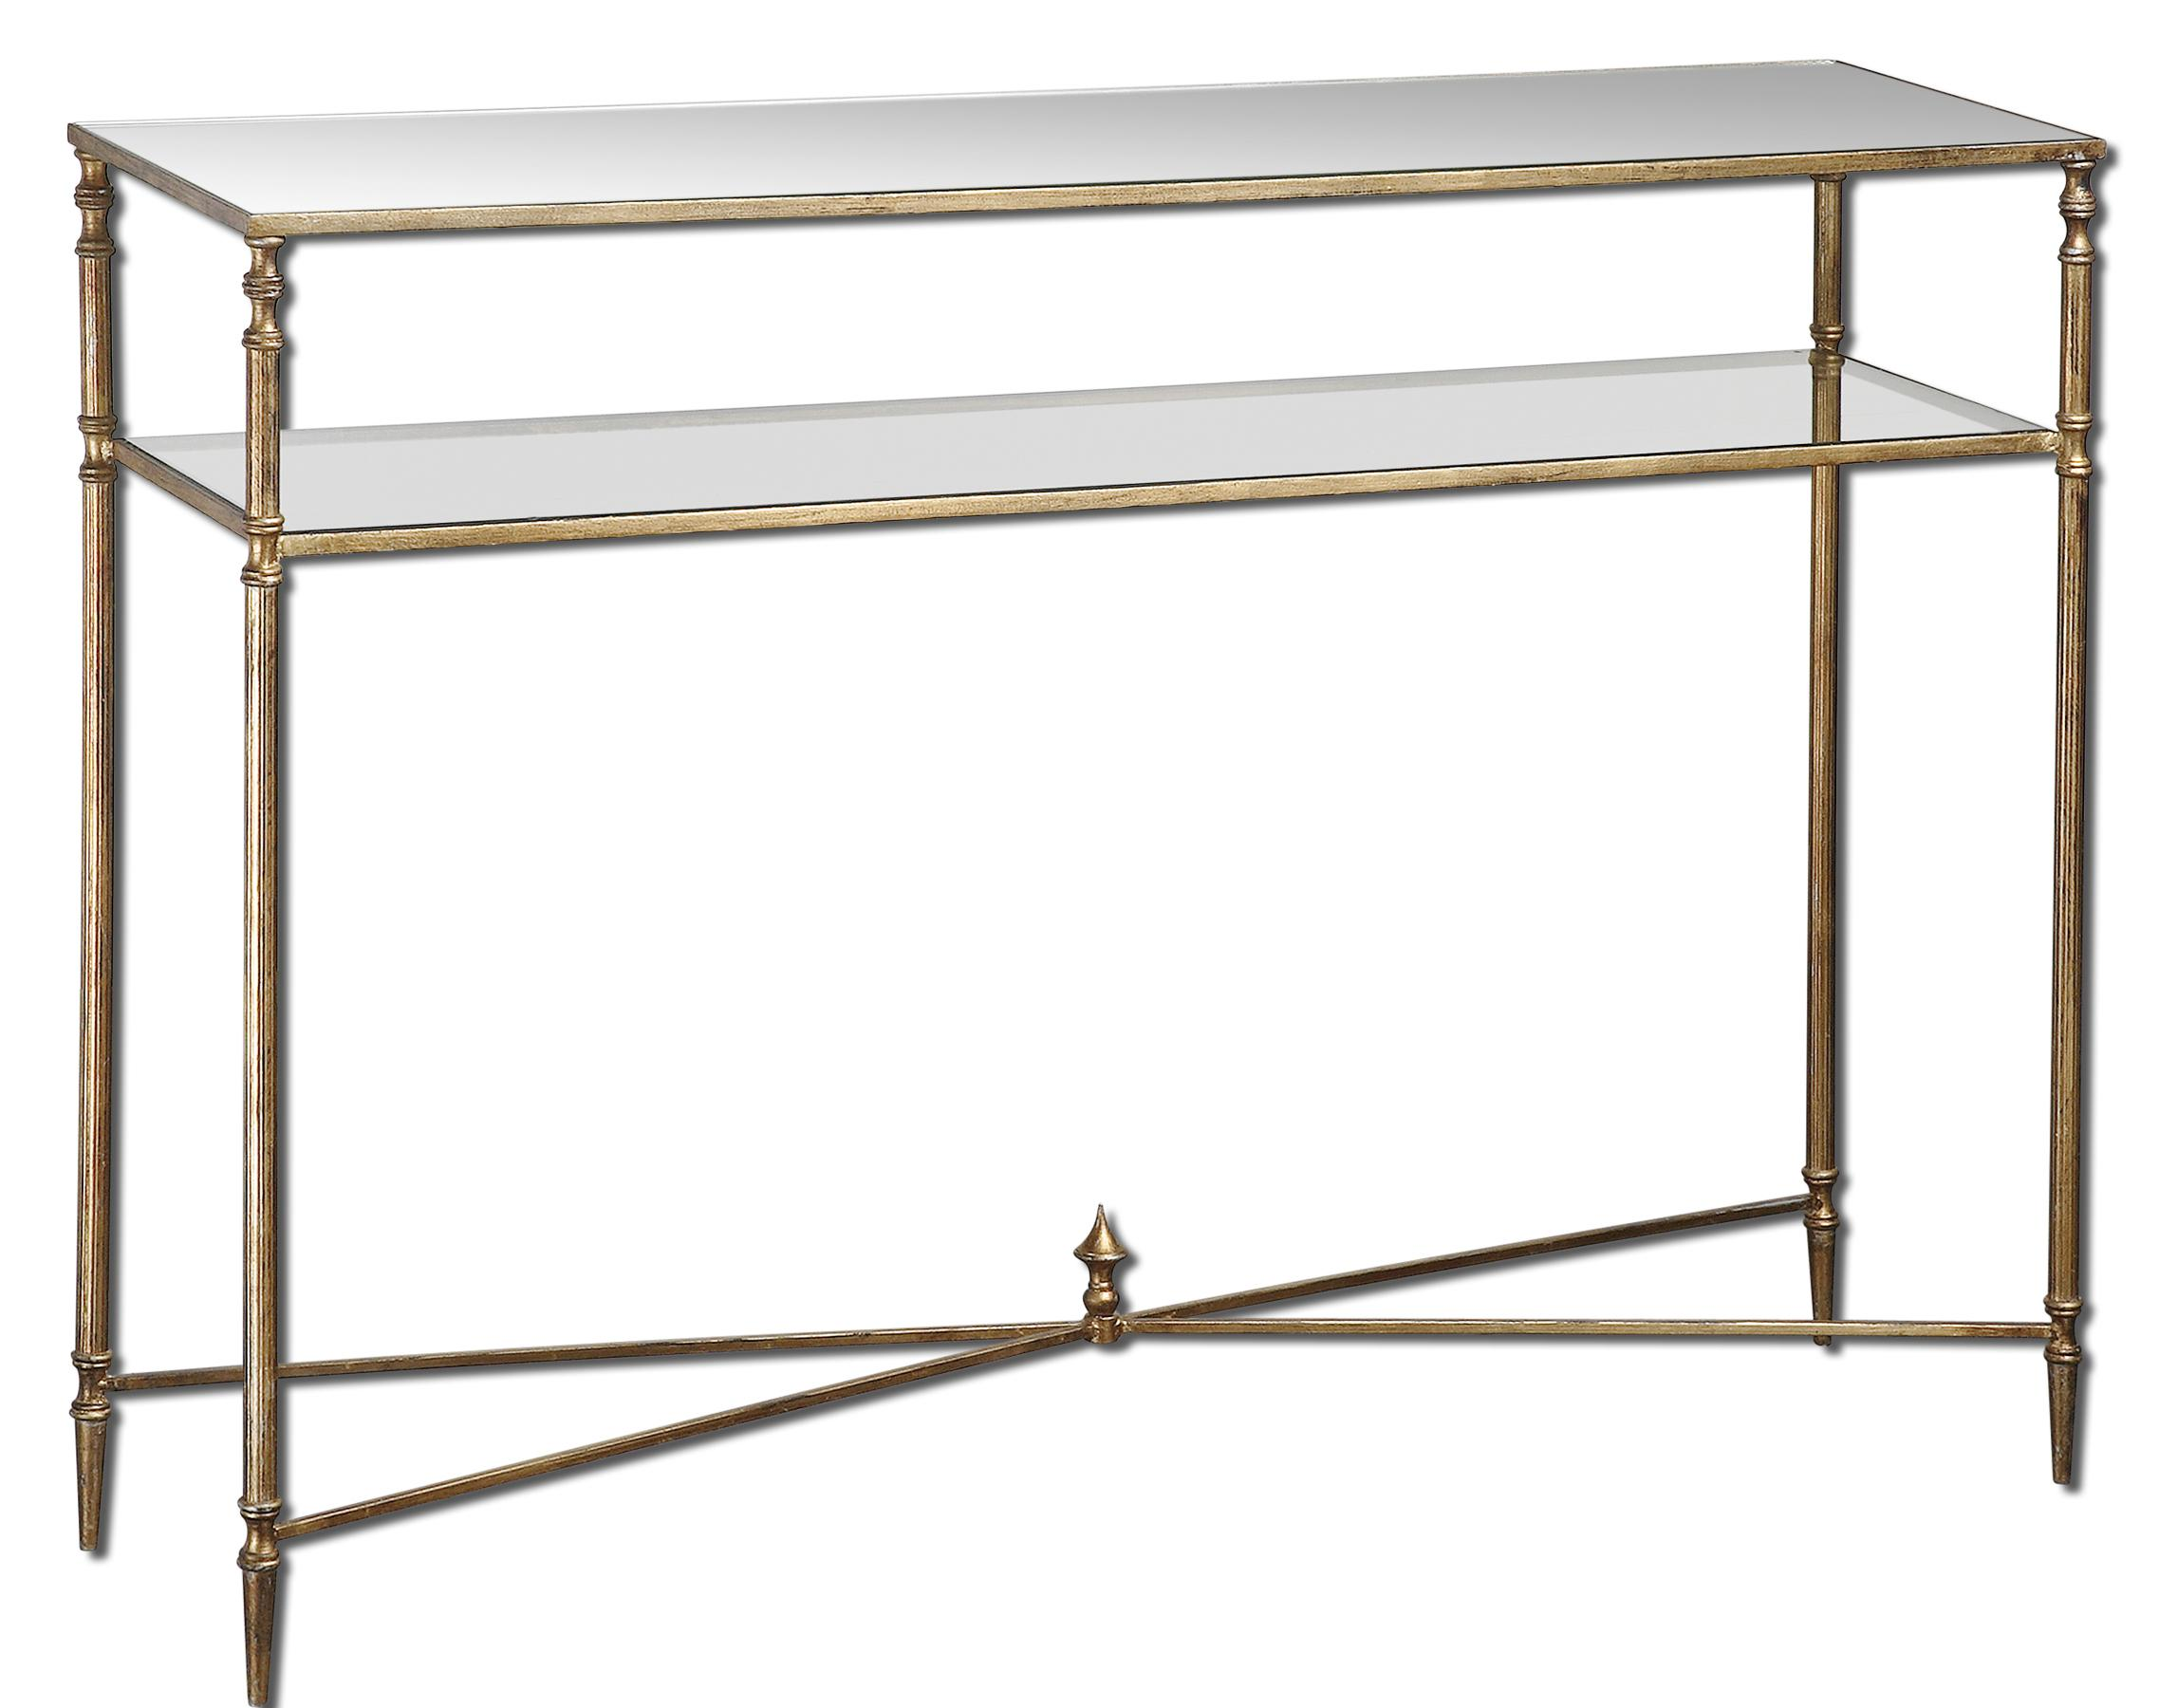 Uttermost Accent Furniture Henzler Console Table - Item Number: 24278